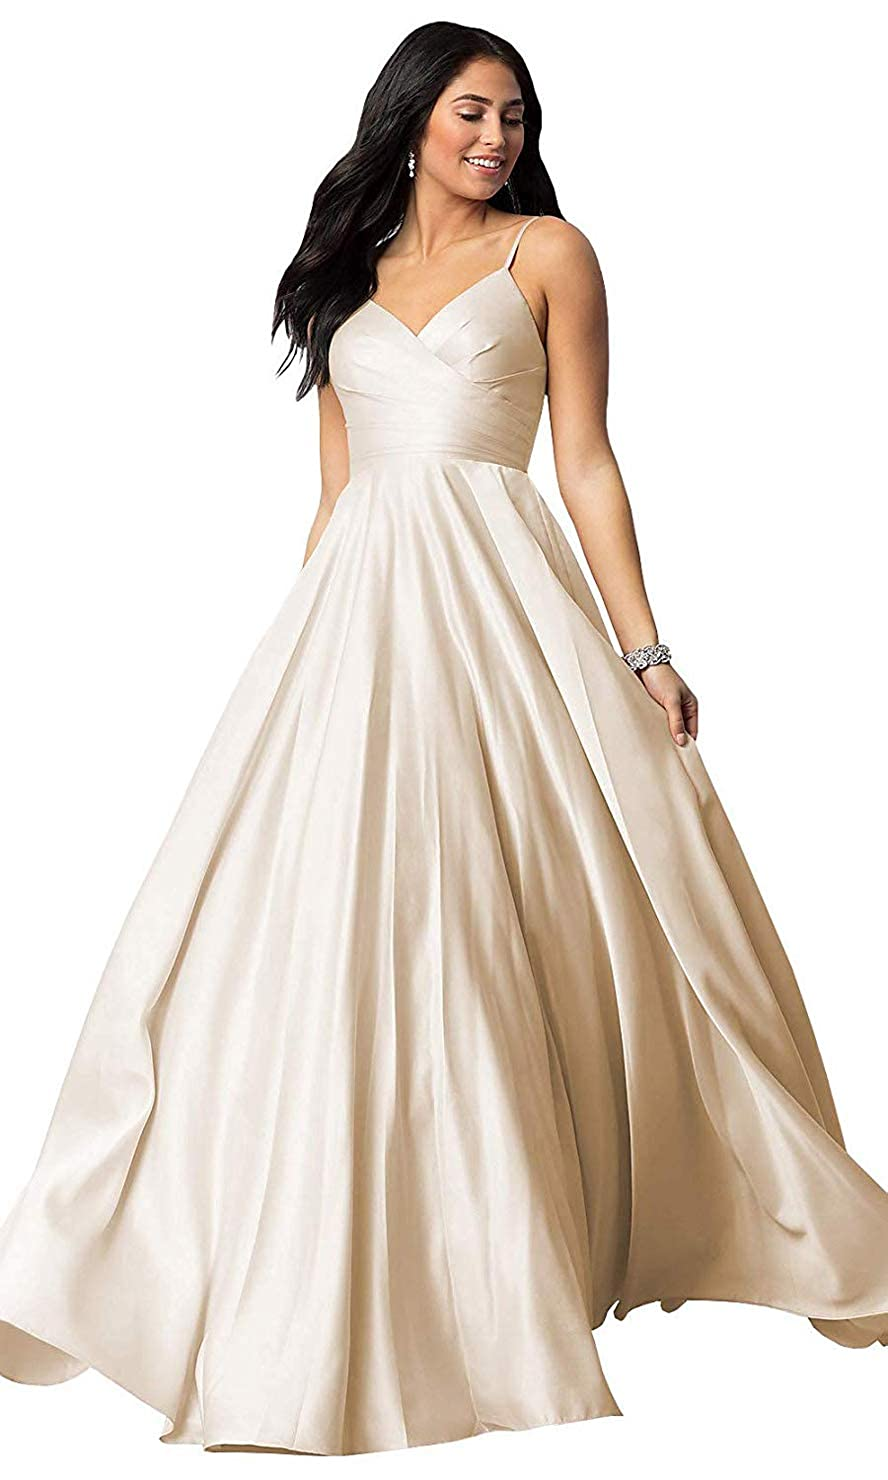 Champagne FeiYueXinXing Satin VNeck Prom Dresses Long Spaghetti Strap Formal Prom Evening Gown